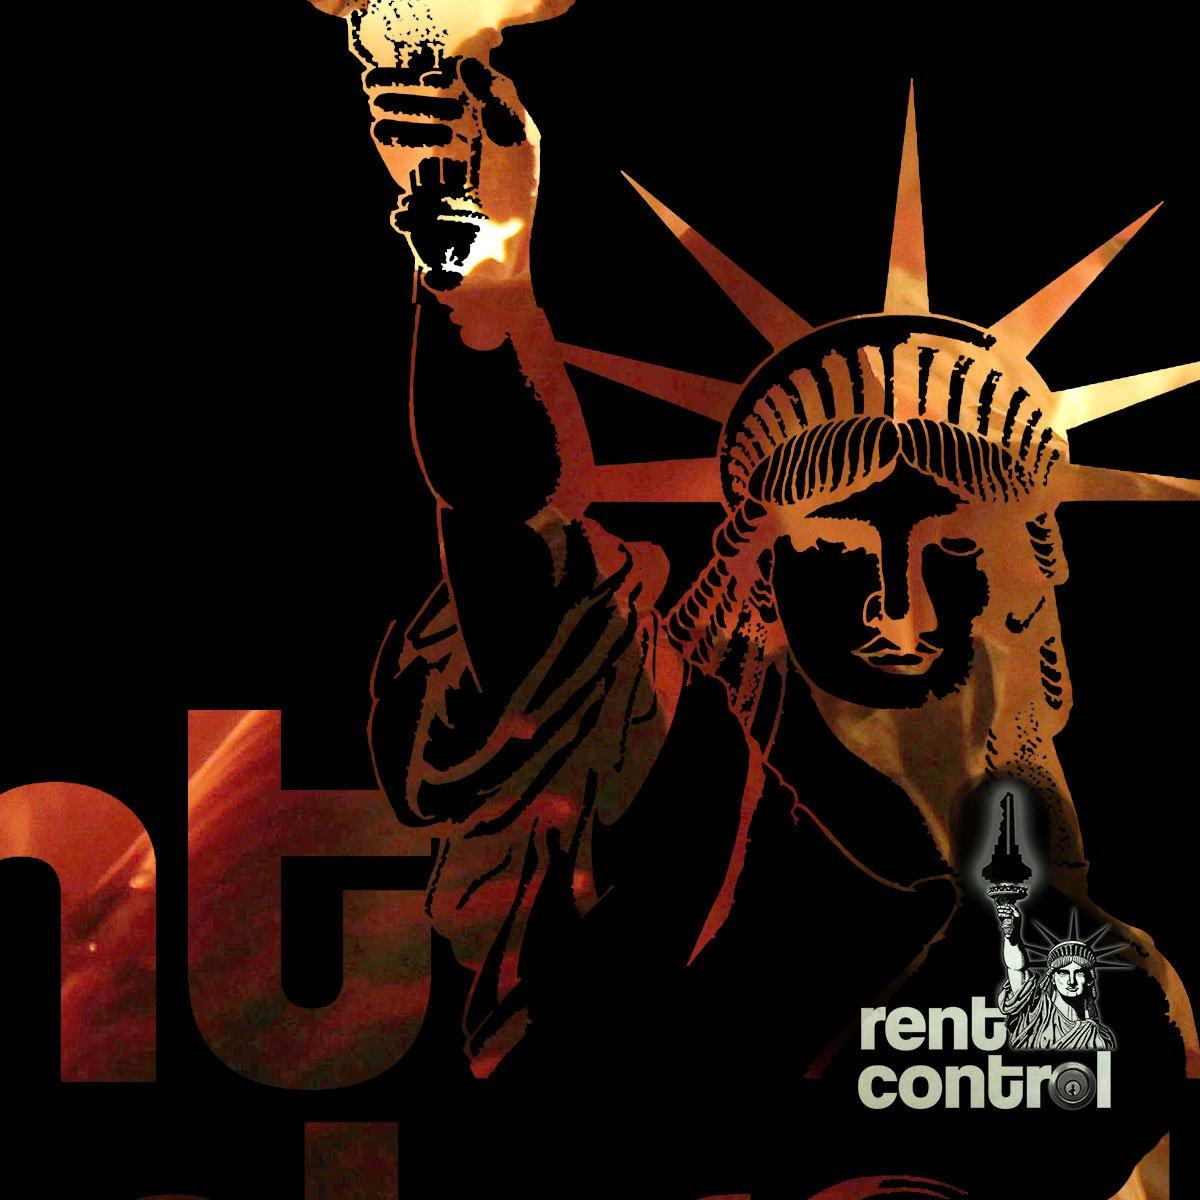 """Now showing as a part of the 2016 Fringe Encore Series at the Huron Club at 15 Vandal St., """"Rent Control"""" puts a comedic twist on the difficulties associated with high rent in the city."""